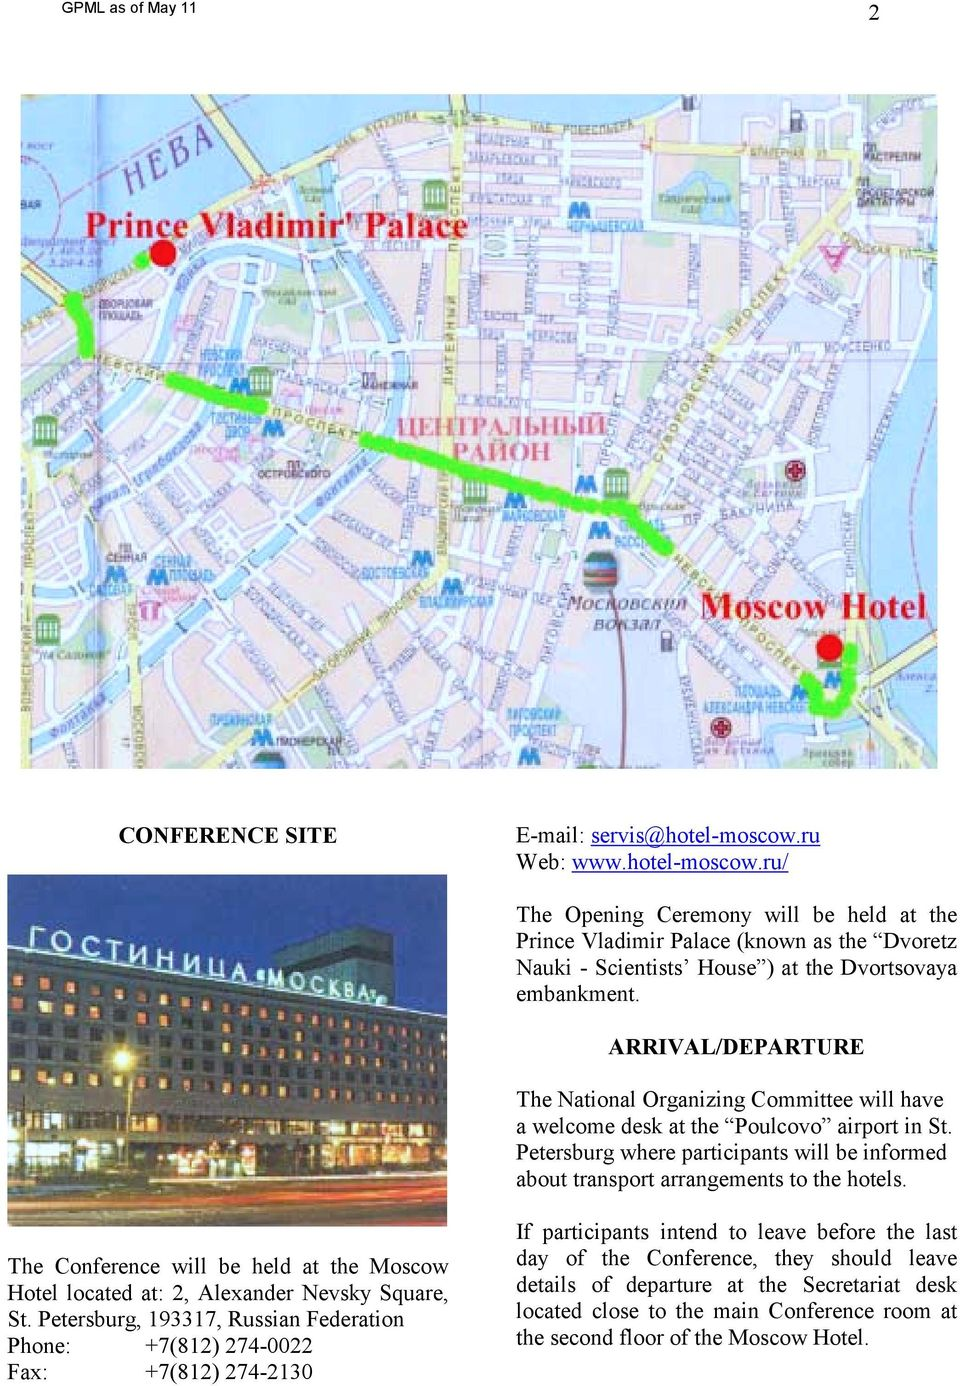 The Conference will be held at the Moscow Hotel located at: 2, Alexander Nevsky Square, St.